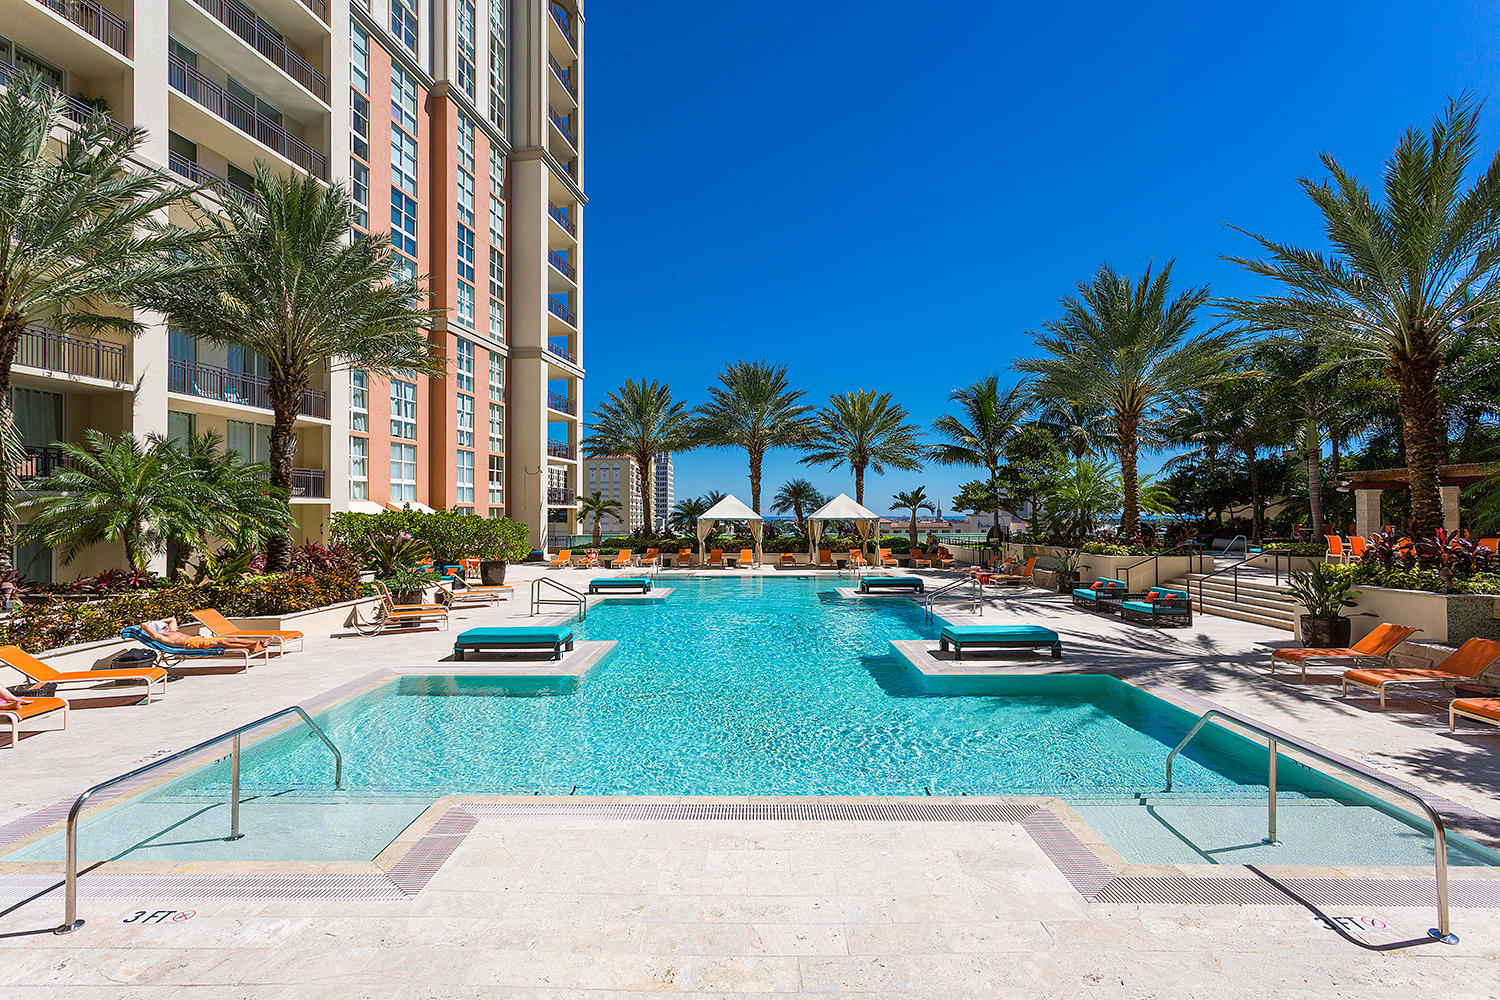 550 Okeechobee Boulevard, Lph-20 - West Palm Beach, Florida